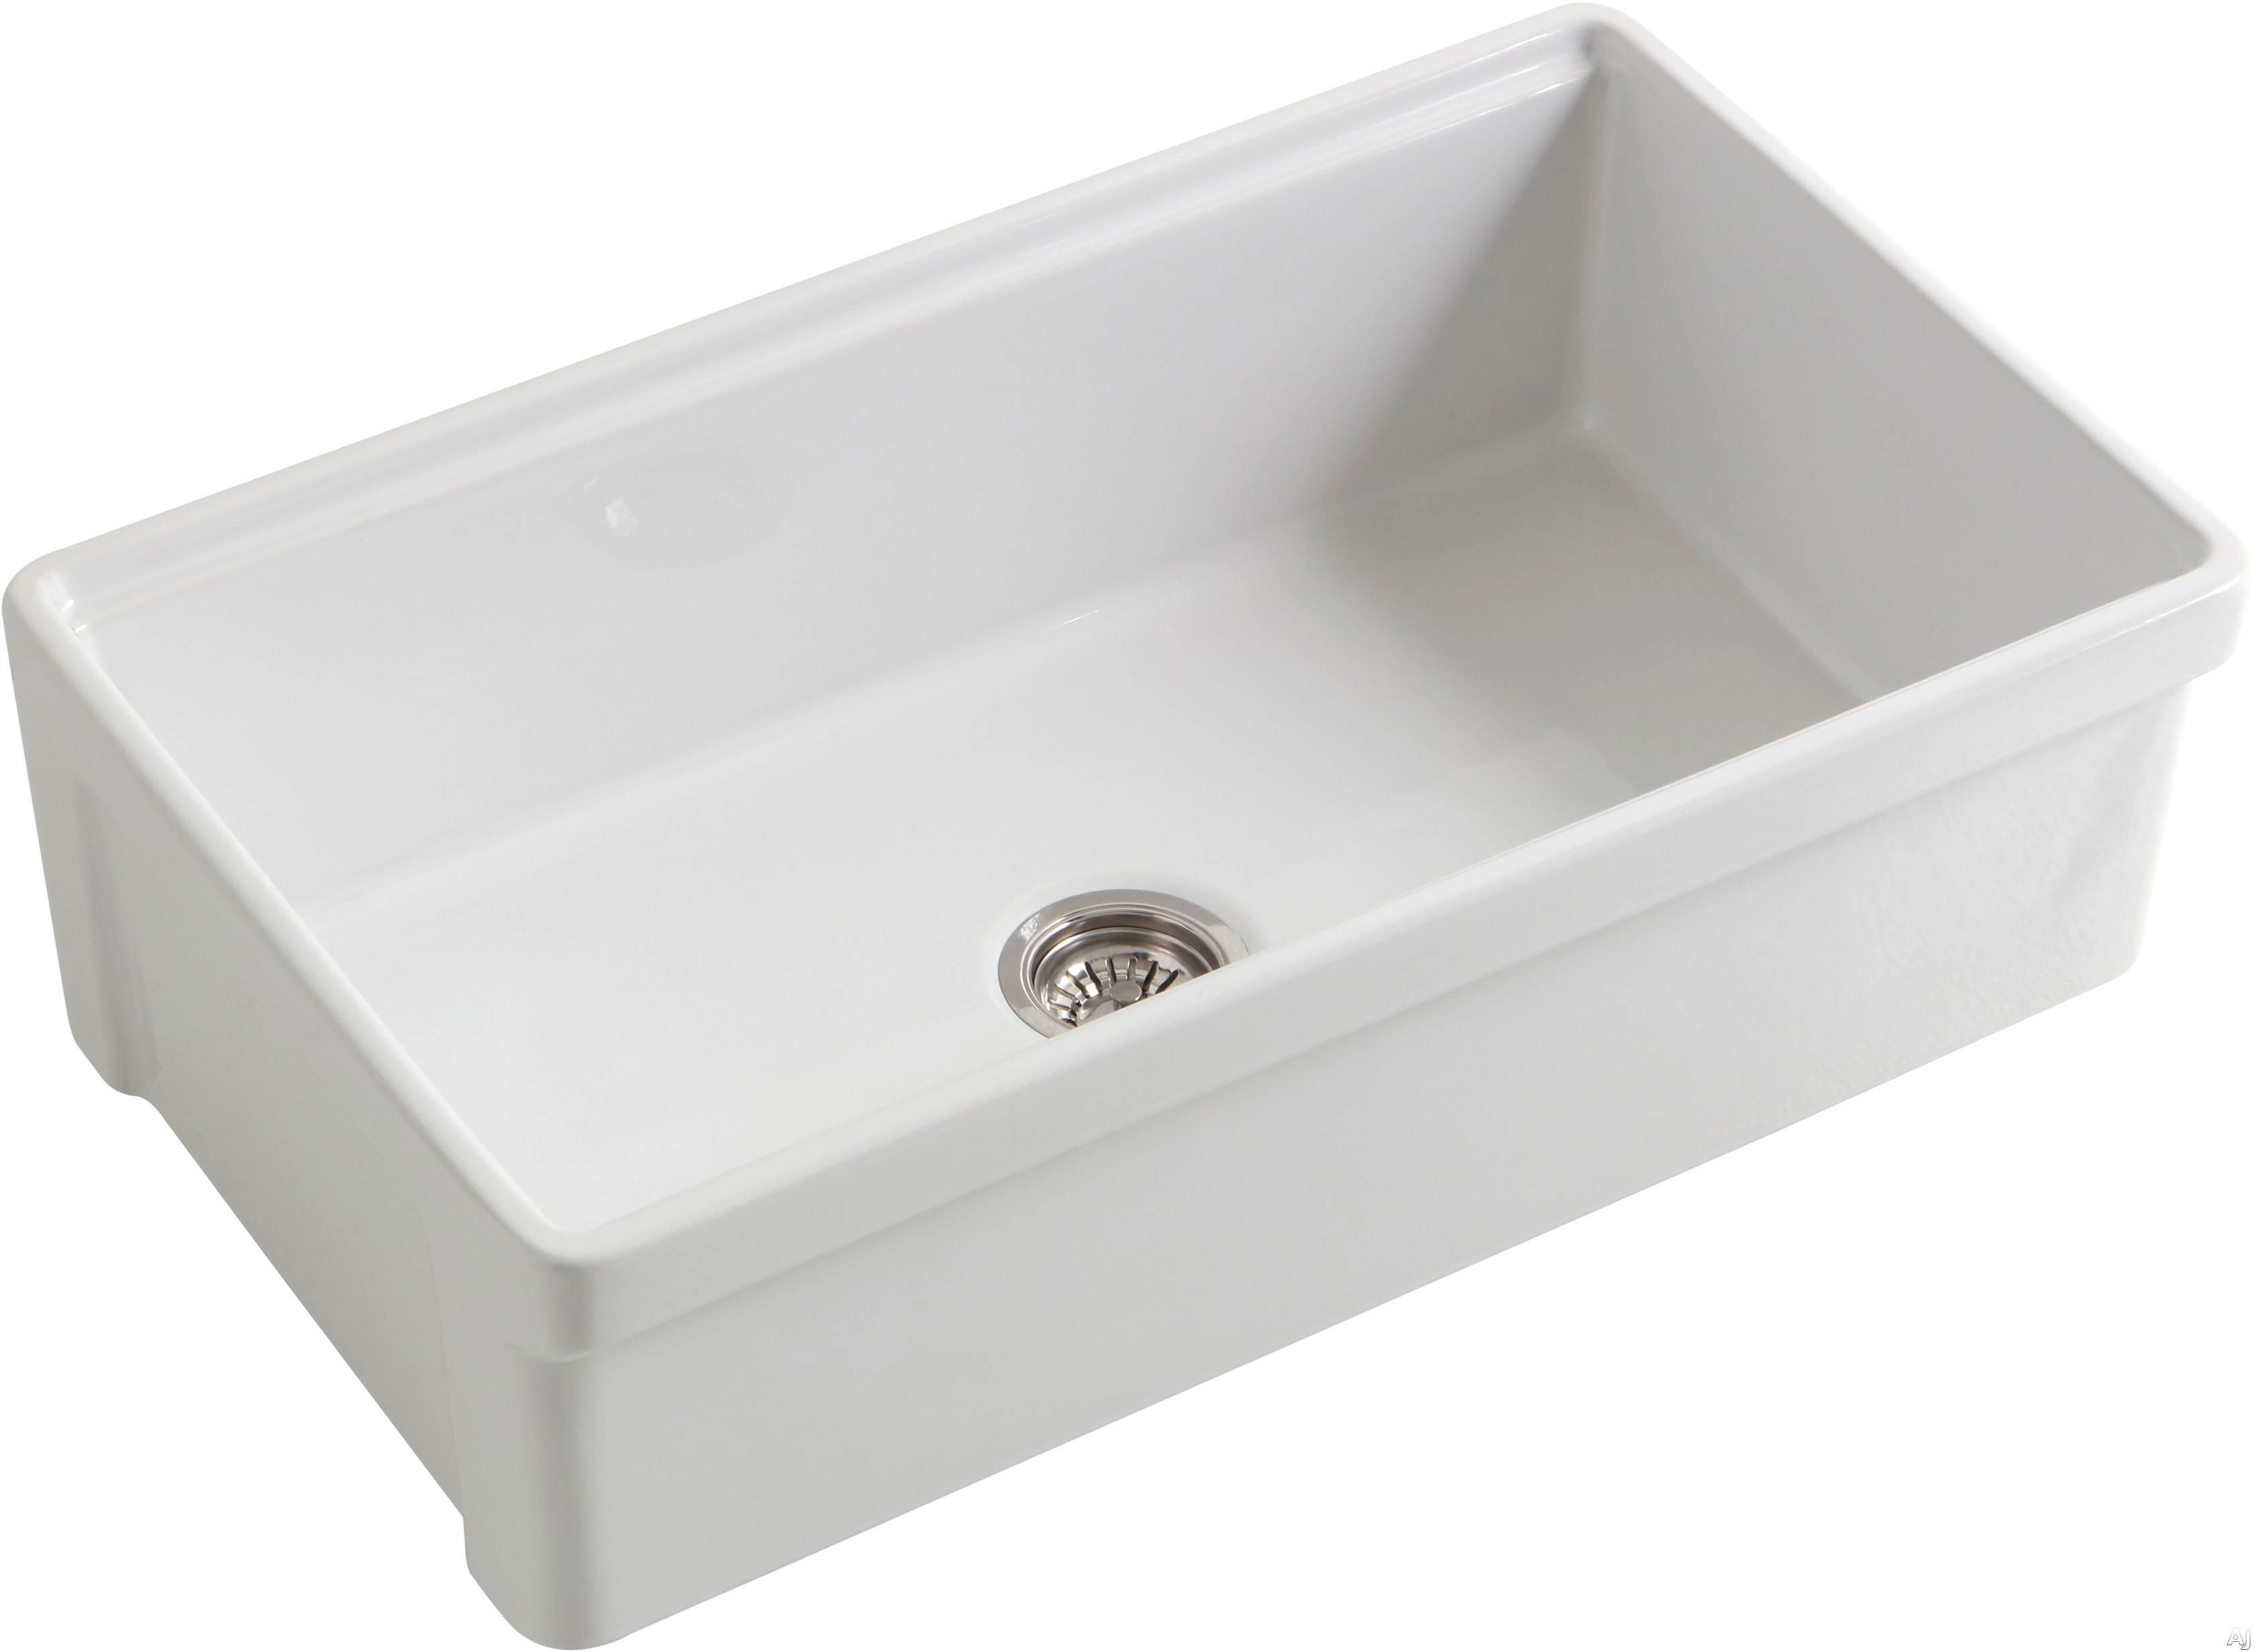 Empire Industries Tosca Collection TO33S 33 Inch Single Bowl Reversible Farmhouse Kitchen Sink with Reversible Farmhouse Design, Integral Accessory Ledge and Fireclay Material